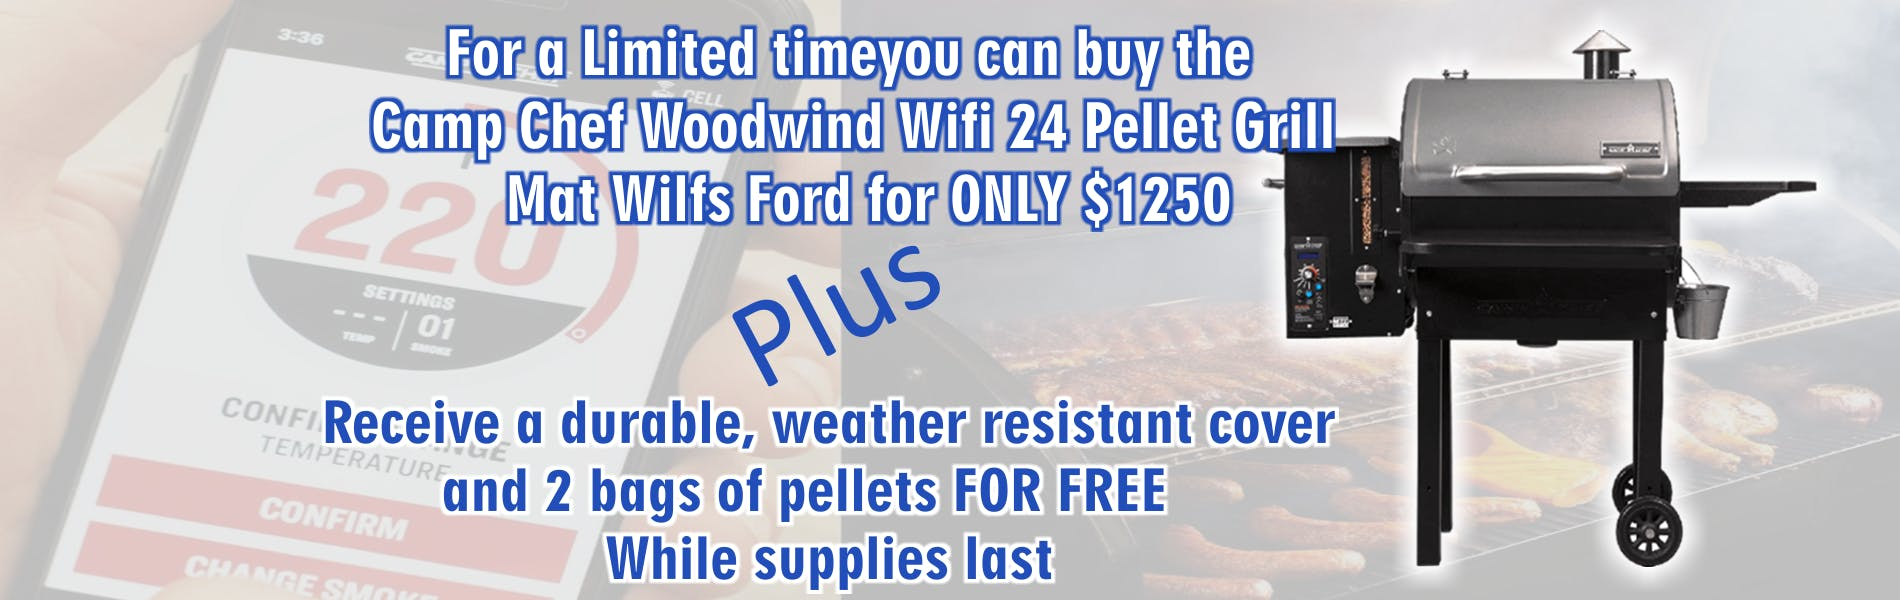 Woodwind Grill Promotion